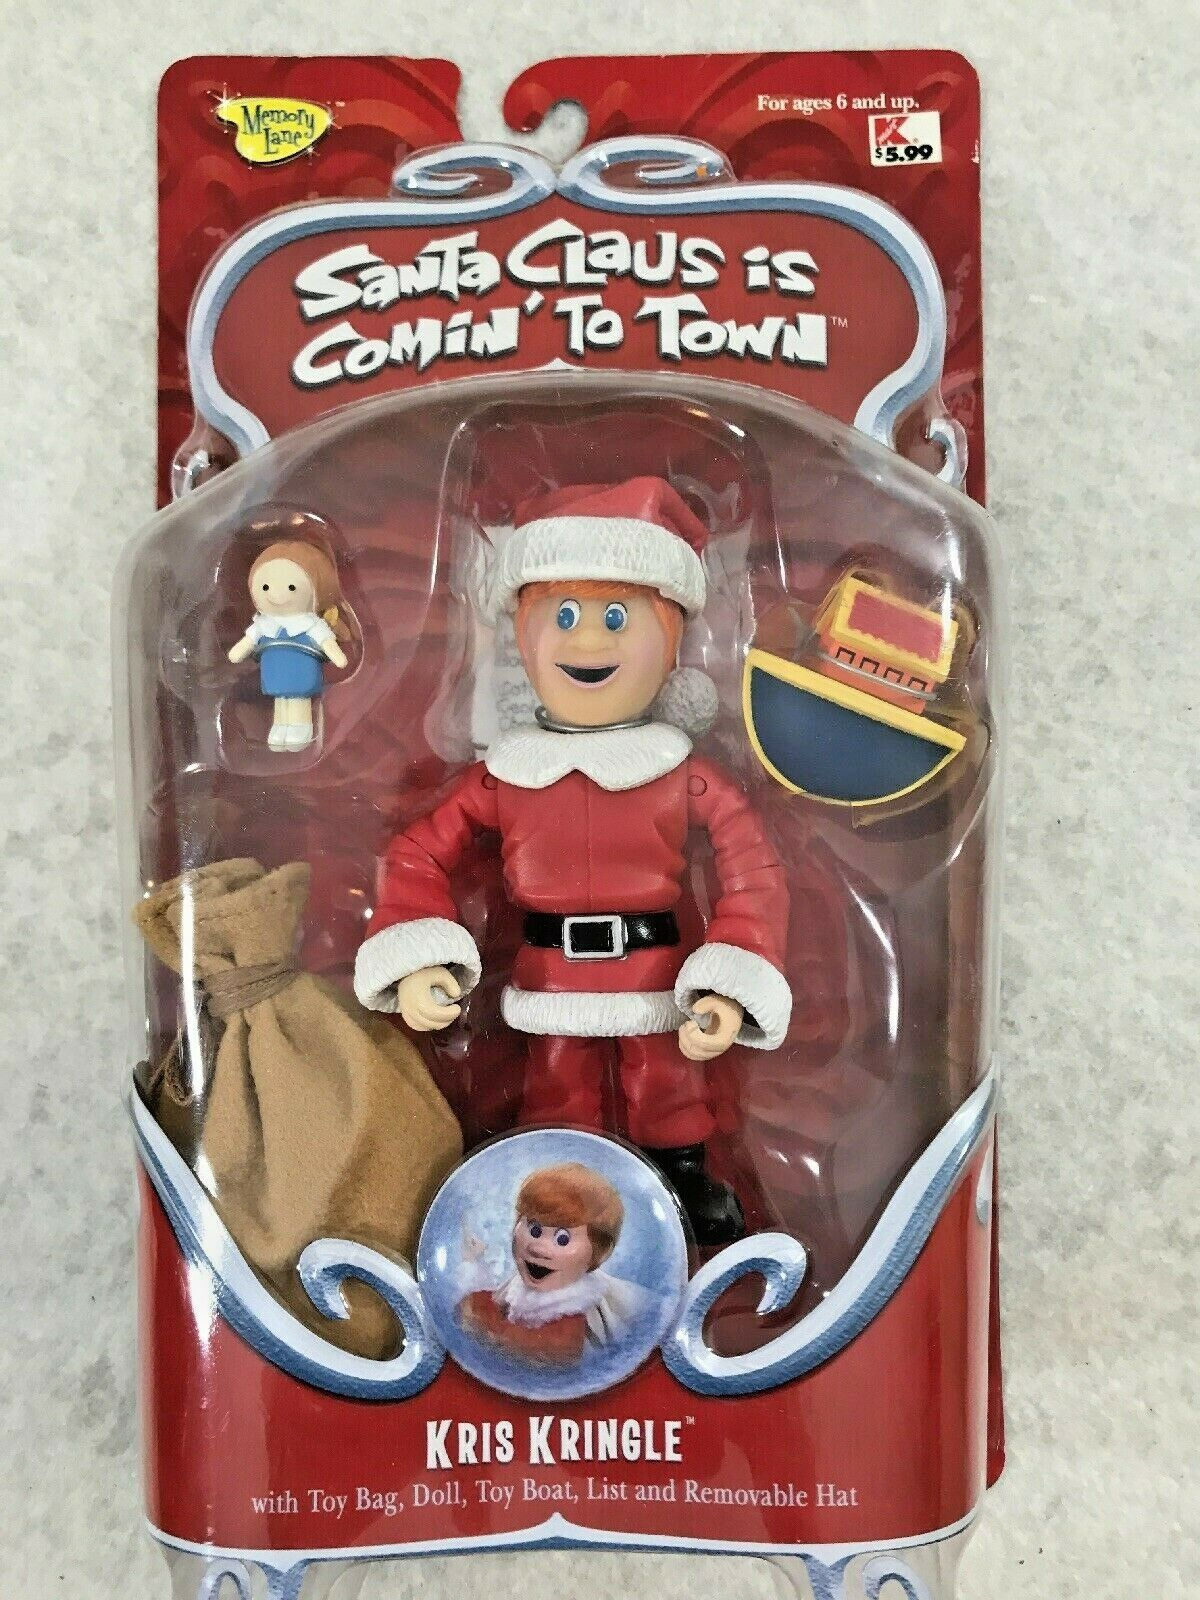 Kris Kringle Santa Claus is coming to Town Action Figure accesories NIP 2004